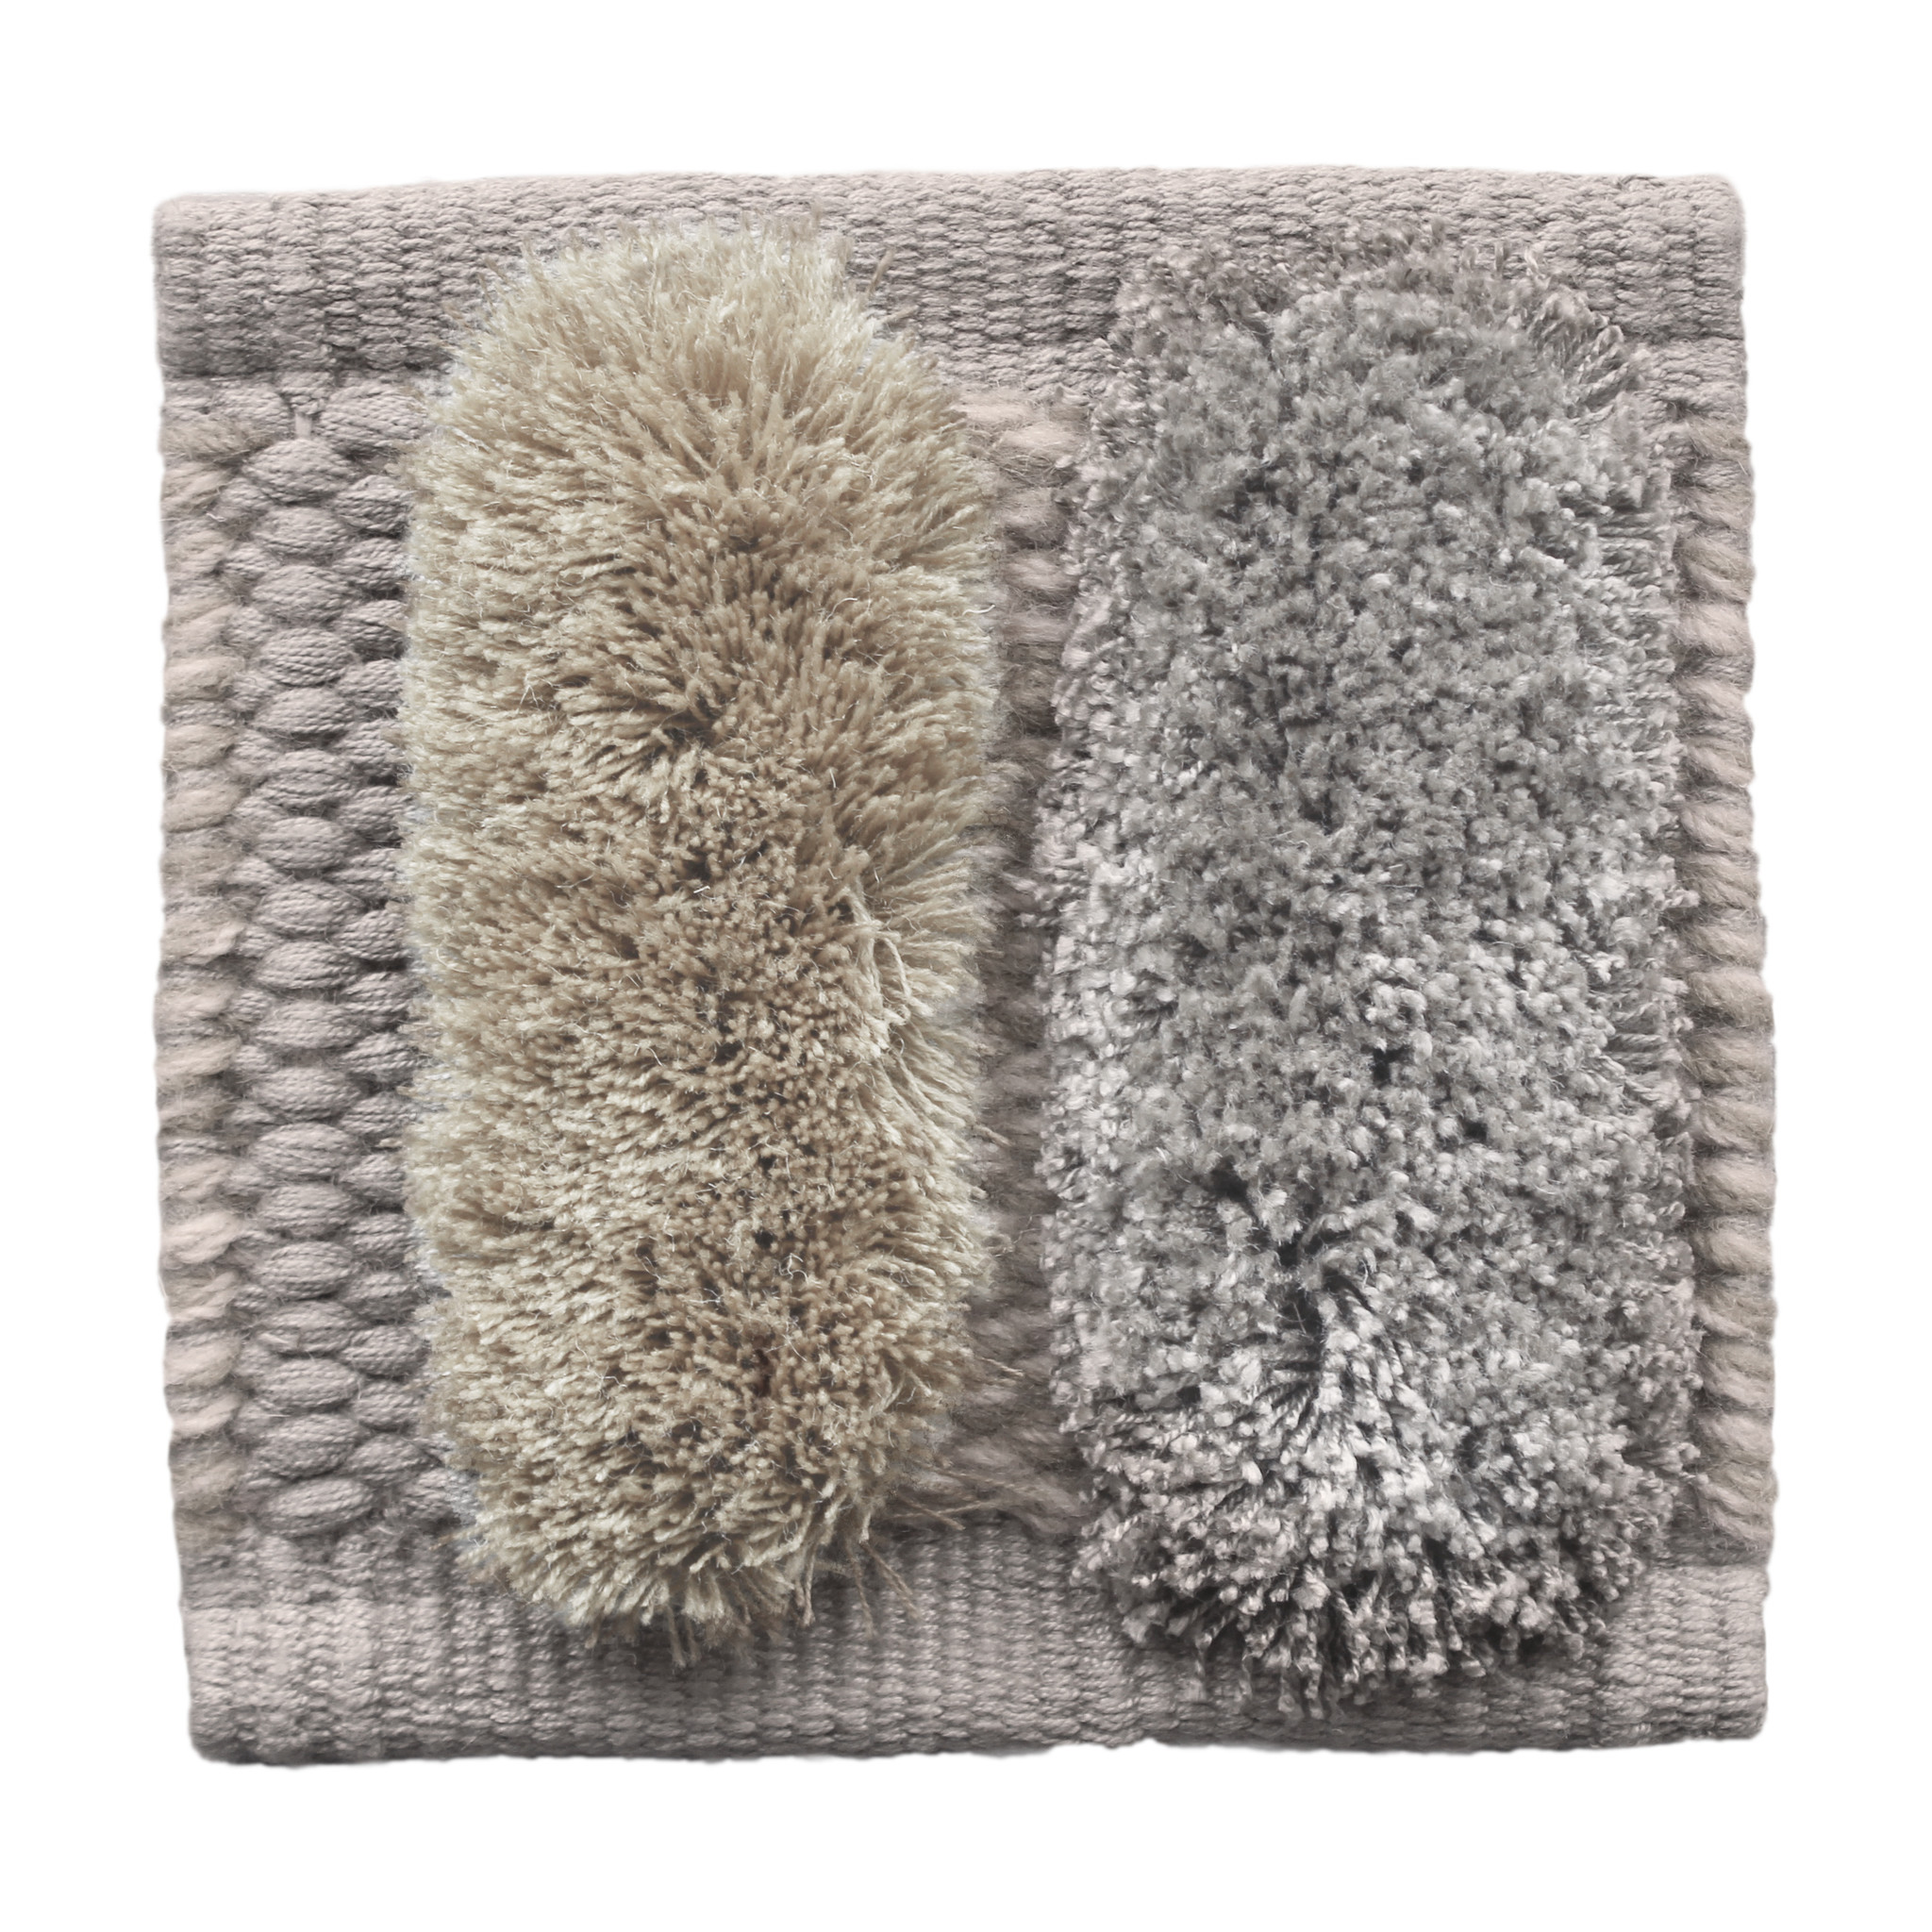 Frankly Amsterdam Fore See - 5701 rug